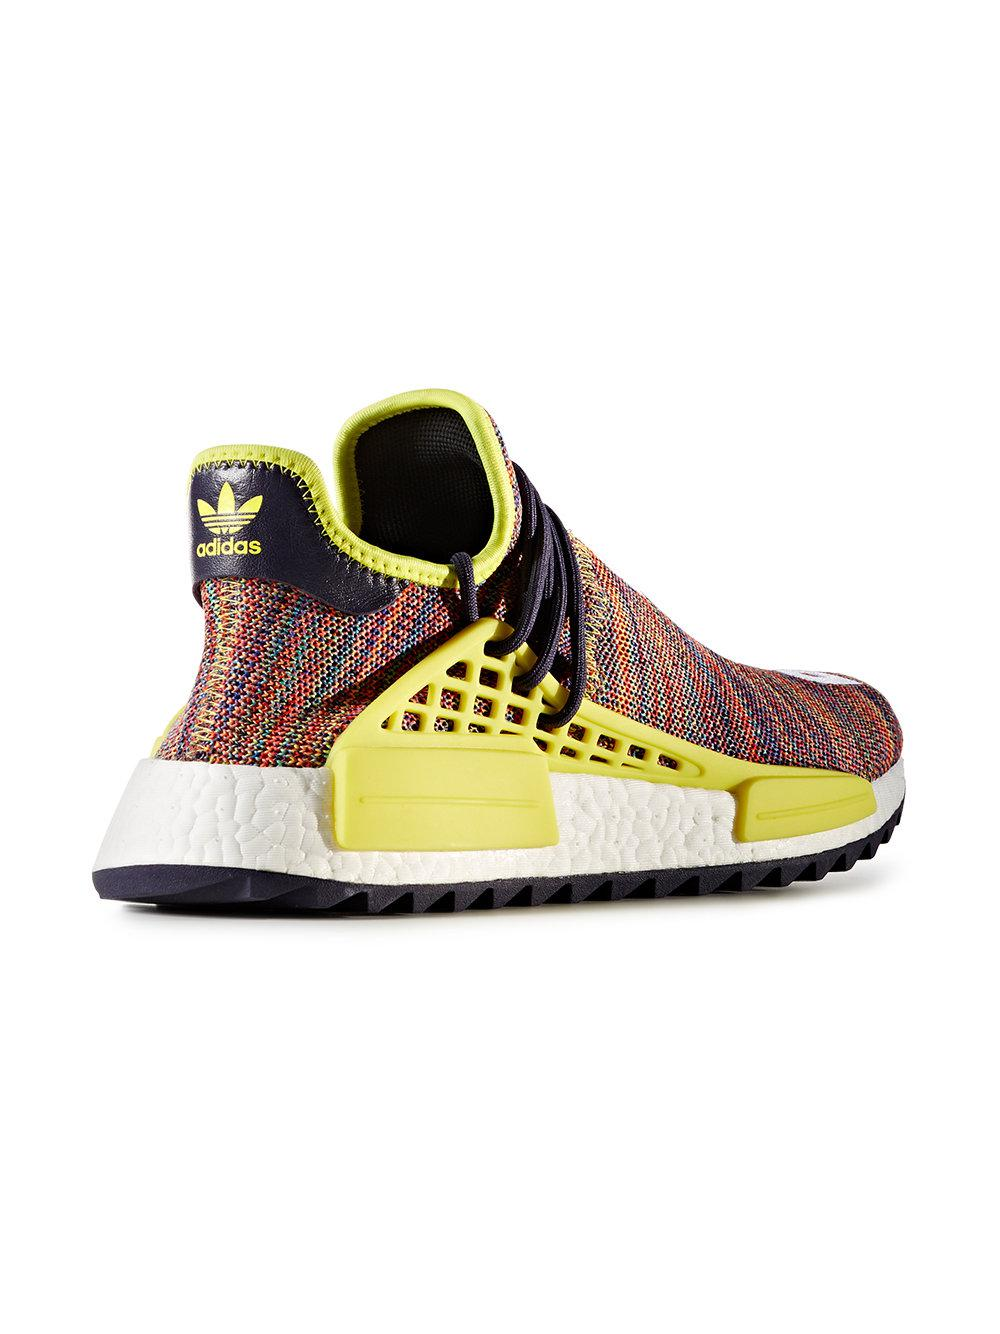 6b77ee04c adidas X Pharrell Williams Human Race Body And Earth Nmd Sneakers ...